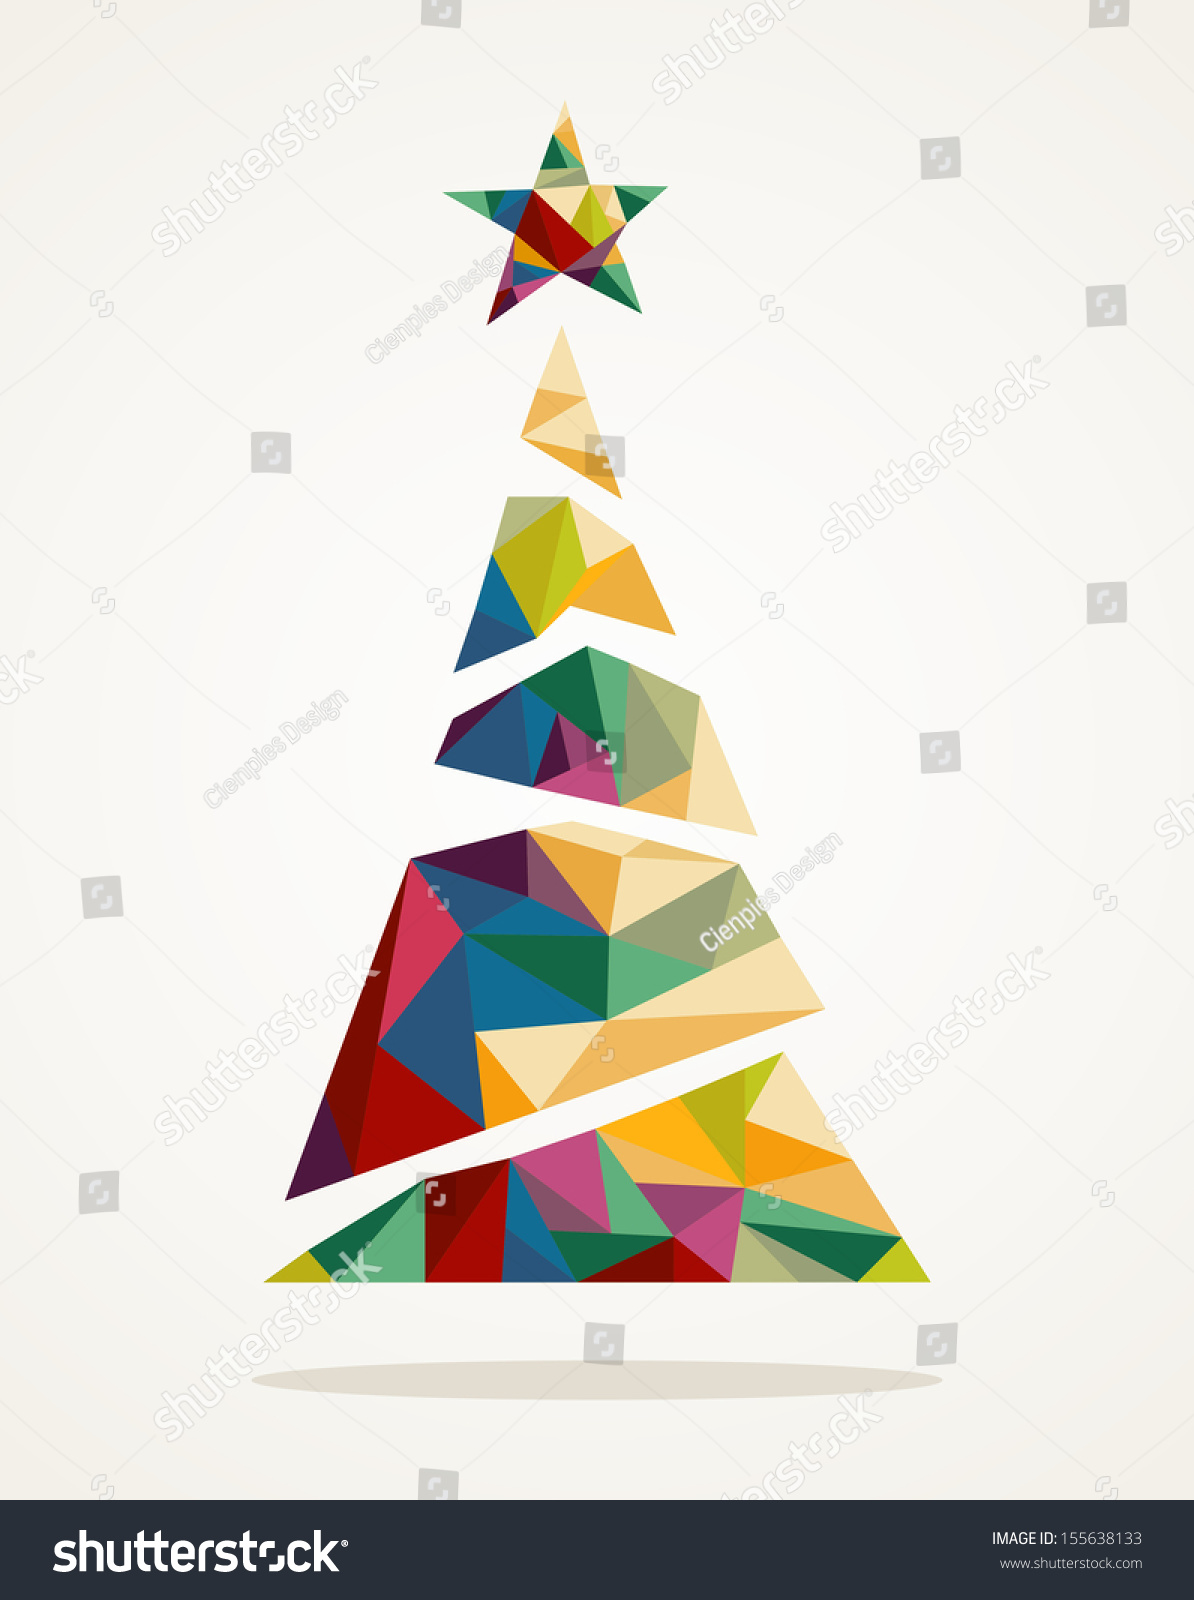 Isolated merry christmas colorful abstract tree stock for Abstract decoration